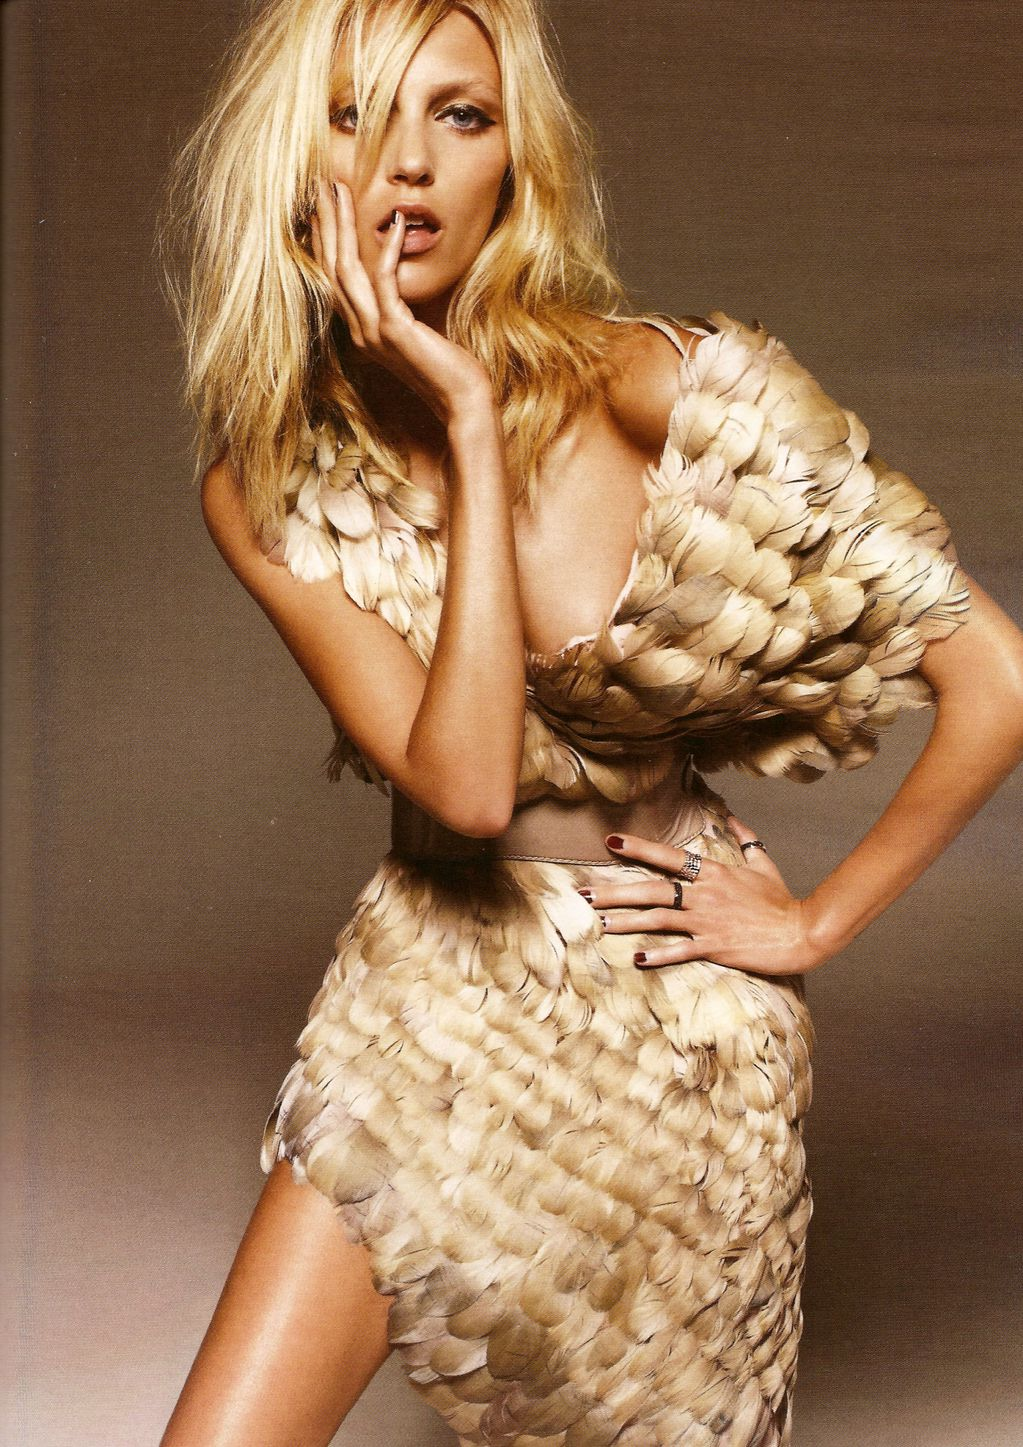 Editorial Glamour Makeup Professional Makeup Artist: Things I Like: Anja Rubik For Glamour Magazine Poland